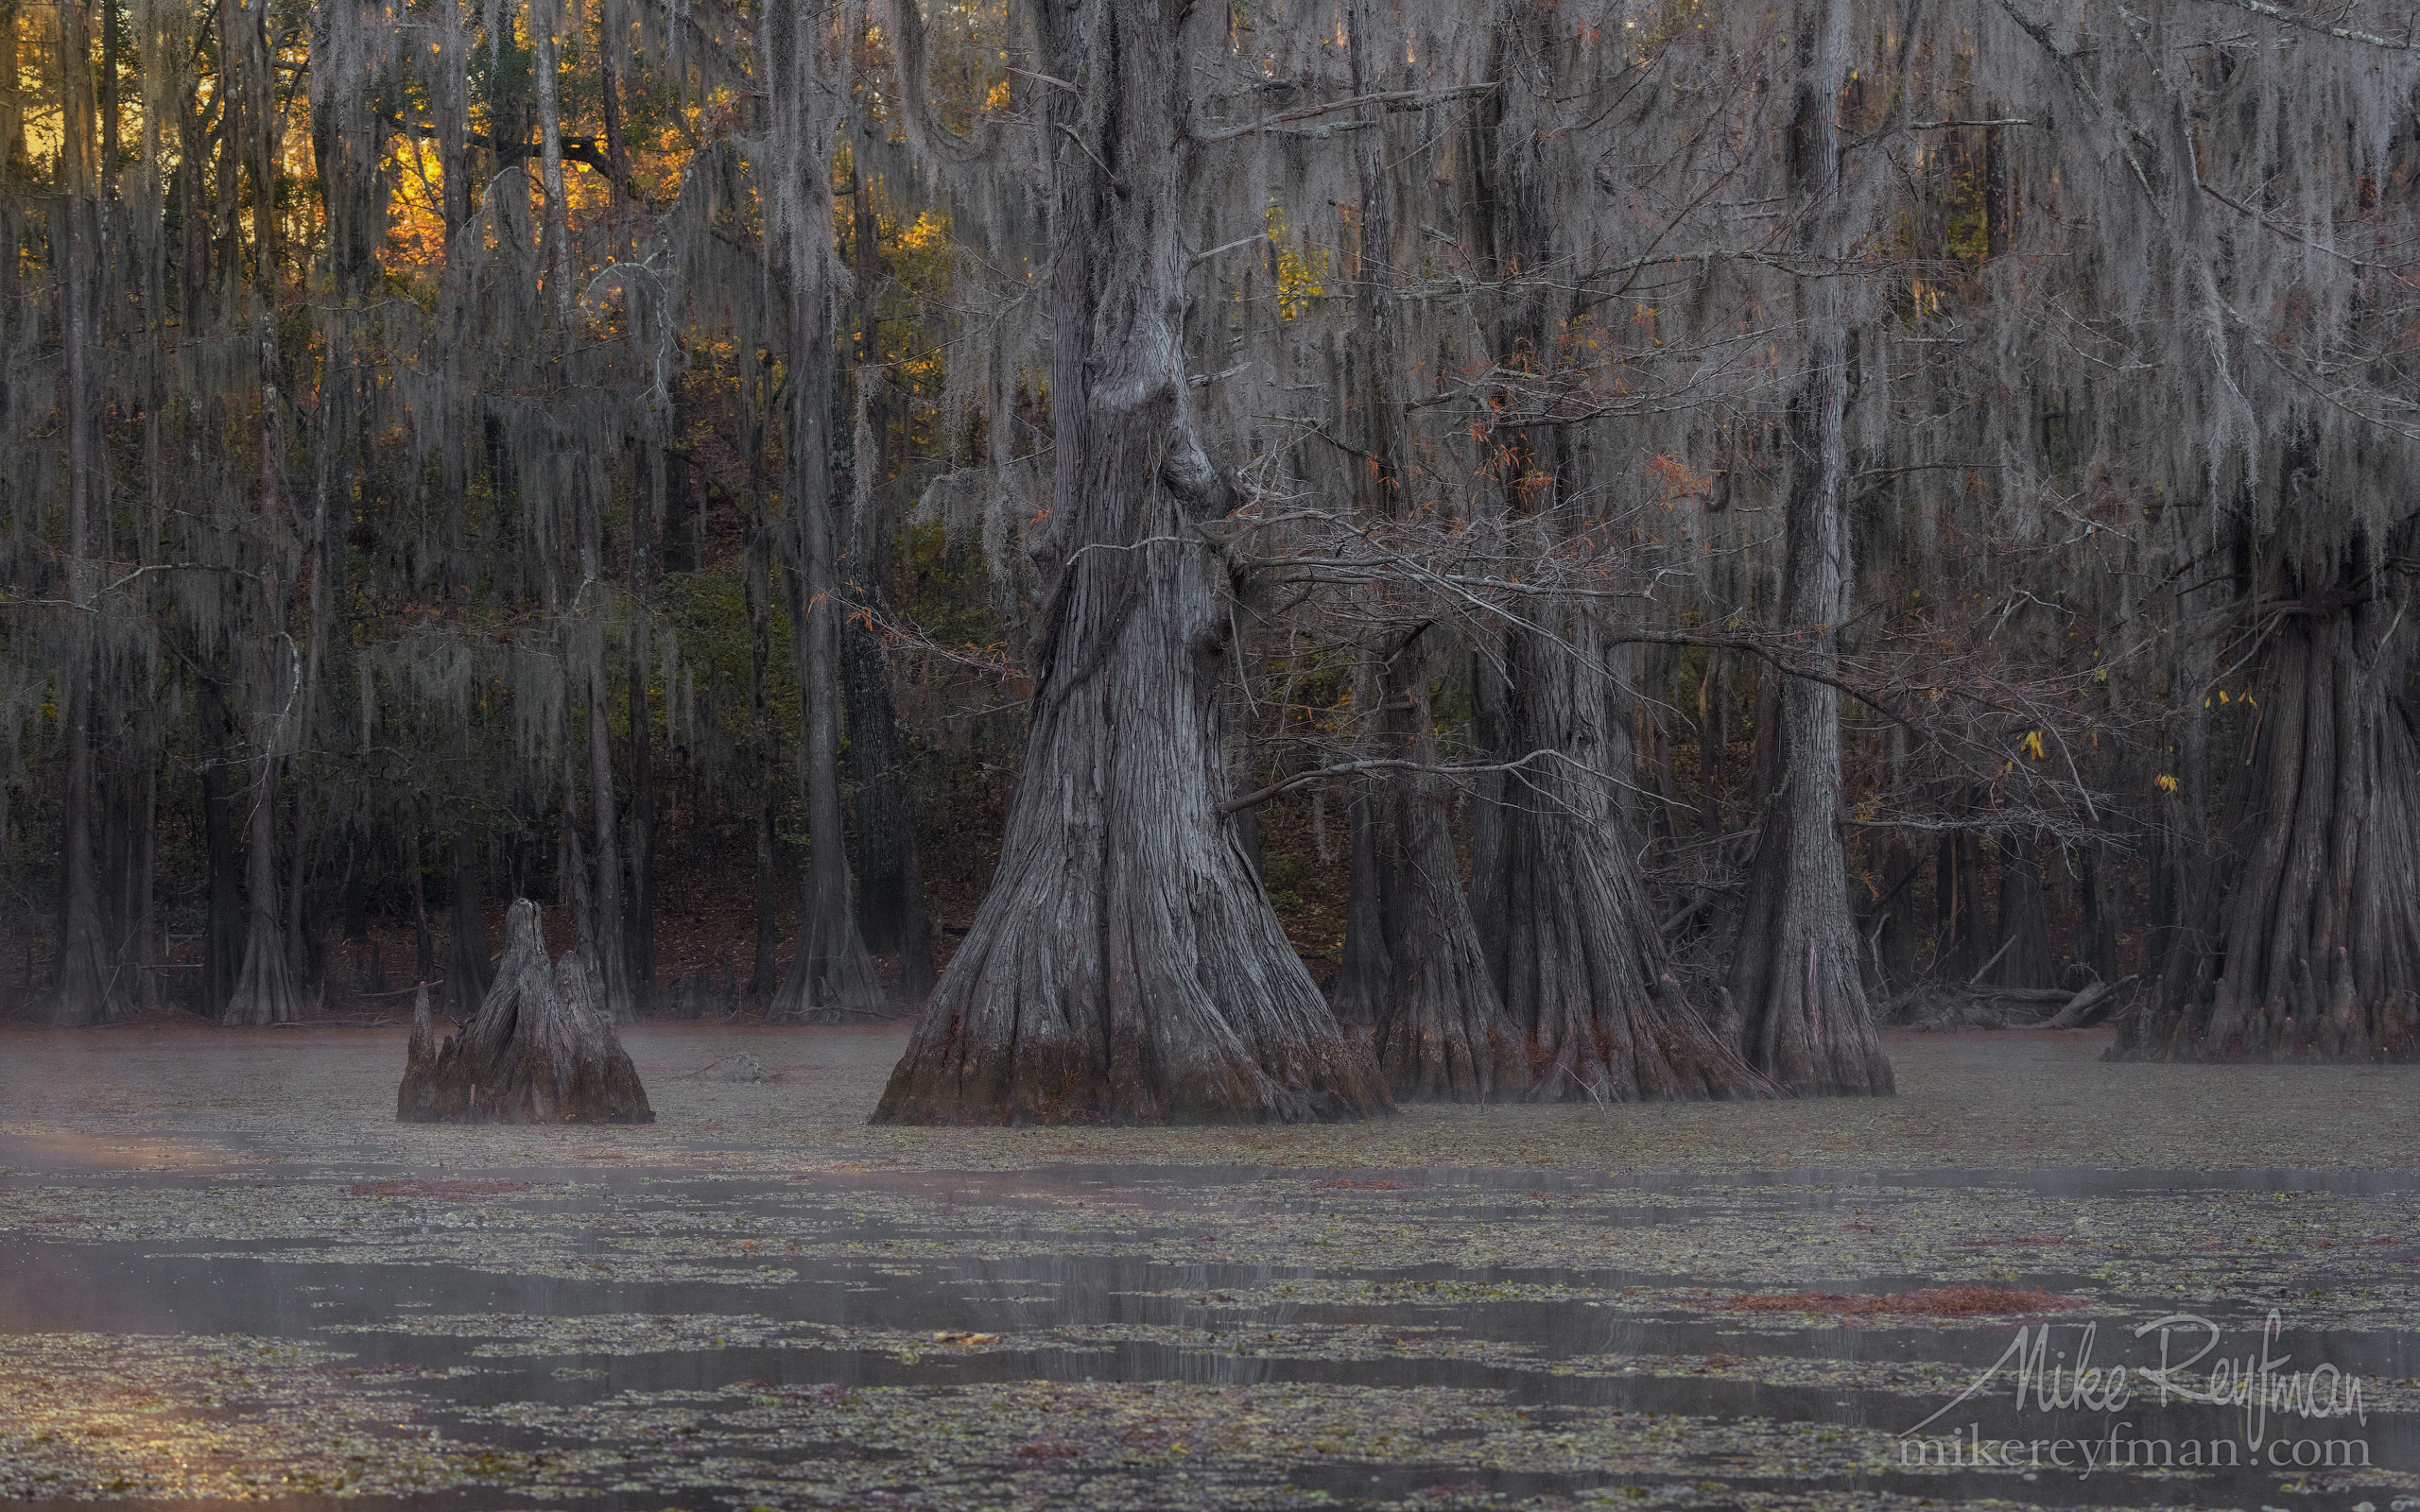 Bald Cypress trees in the swamp. Foggy morning on Caddo Lake, Texas, US 031-LT1-50A3344..jpg - Bold Cypress and Tupelo Trees in the swamps of Atchafalaya River Basin. Caddo, Martin and Fousse Lakes. Texas/Louisiana, USA. - Mike Reyfman Photography